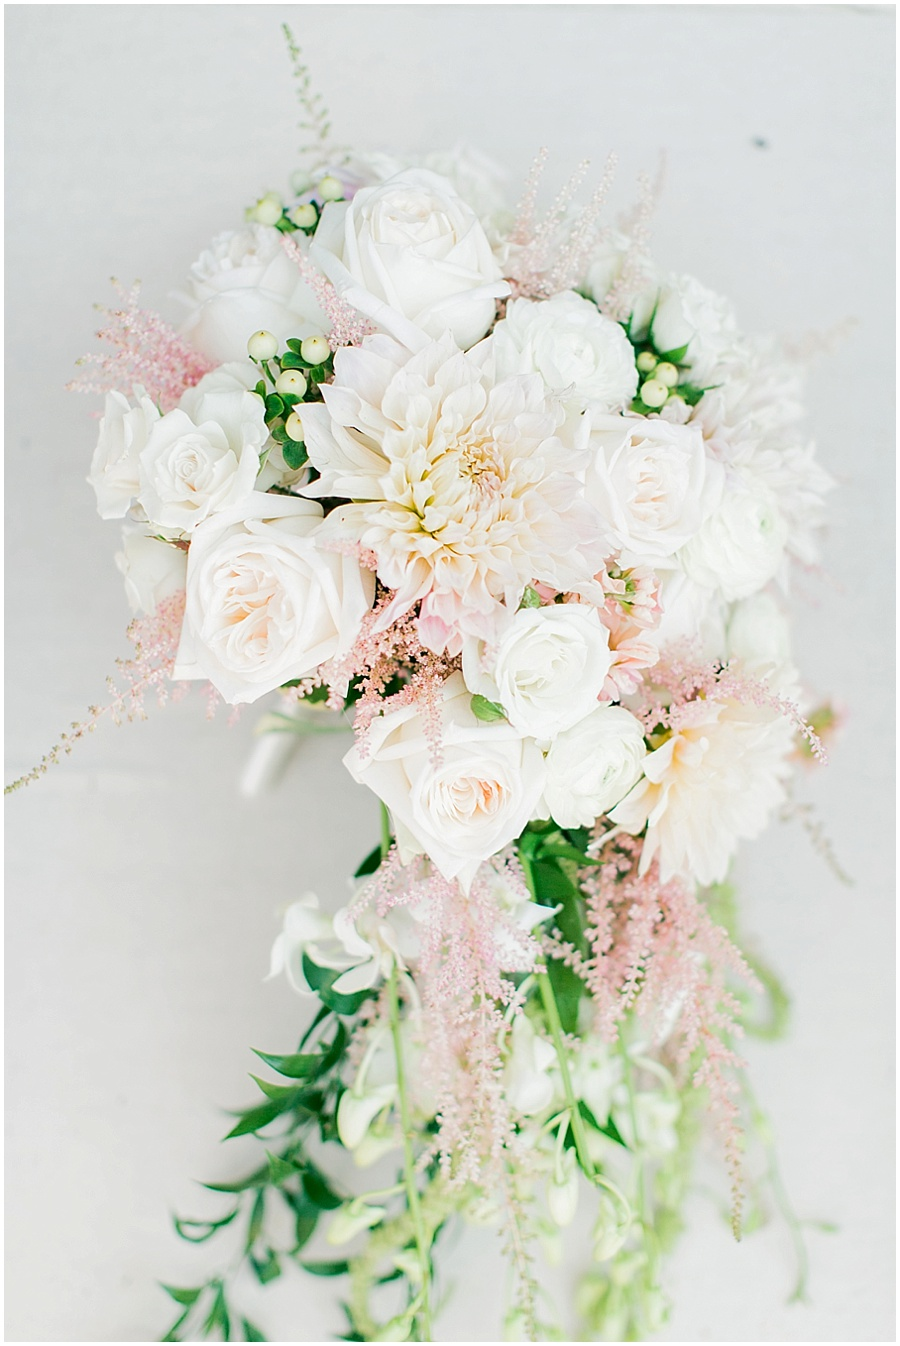 photo tips for light and airy bouquet photo